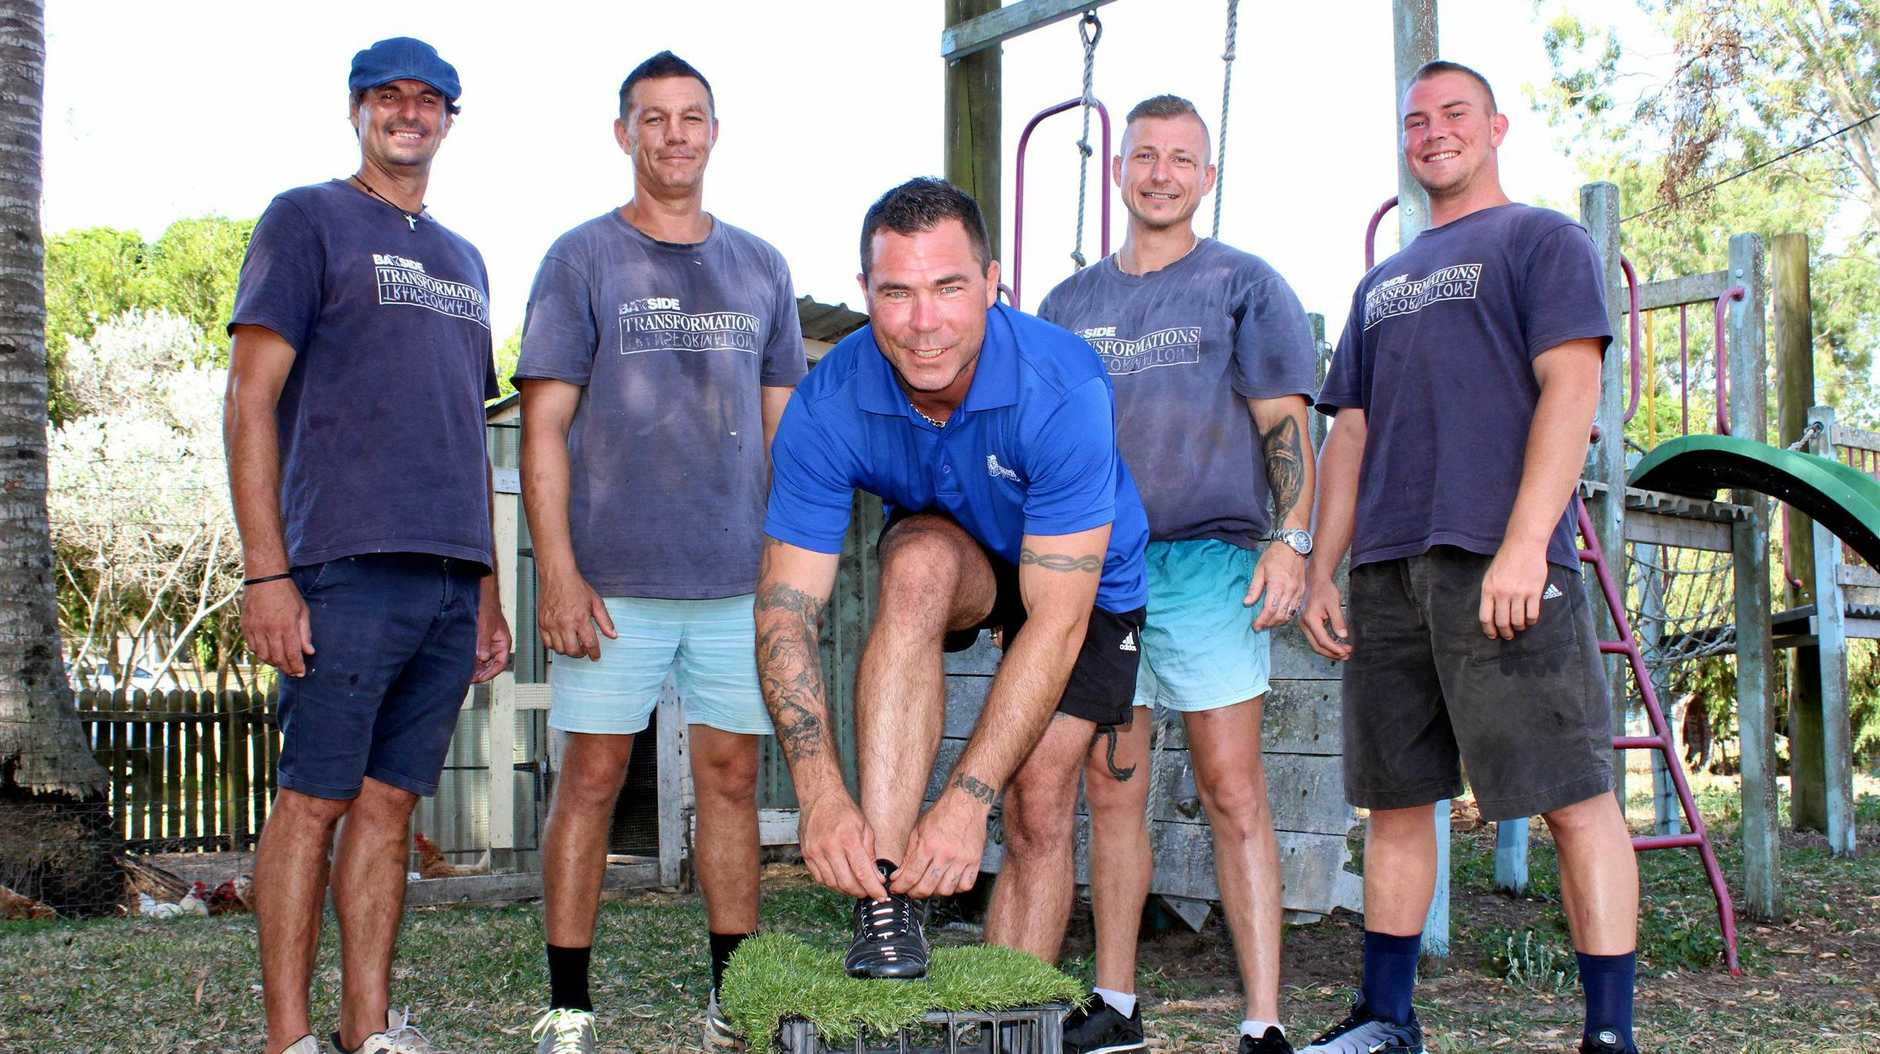 LIFE CHANGING: (Back) Paul Bertino, Allan Harvey, Matty Swarzes and Zack Walthall. (Front) Bayside Transformations graduate Josh Alsop who will share his recovery journey at the Steps for Recovery Walk held on Saturday, February 16.